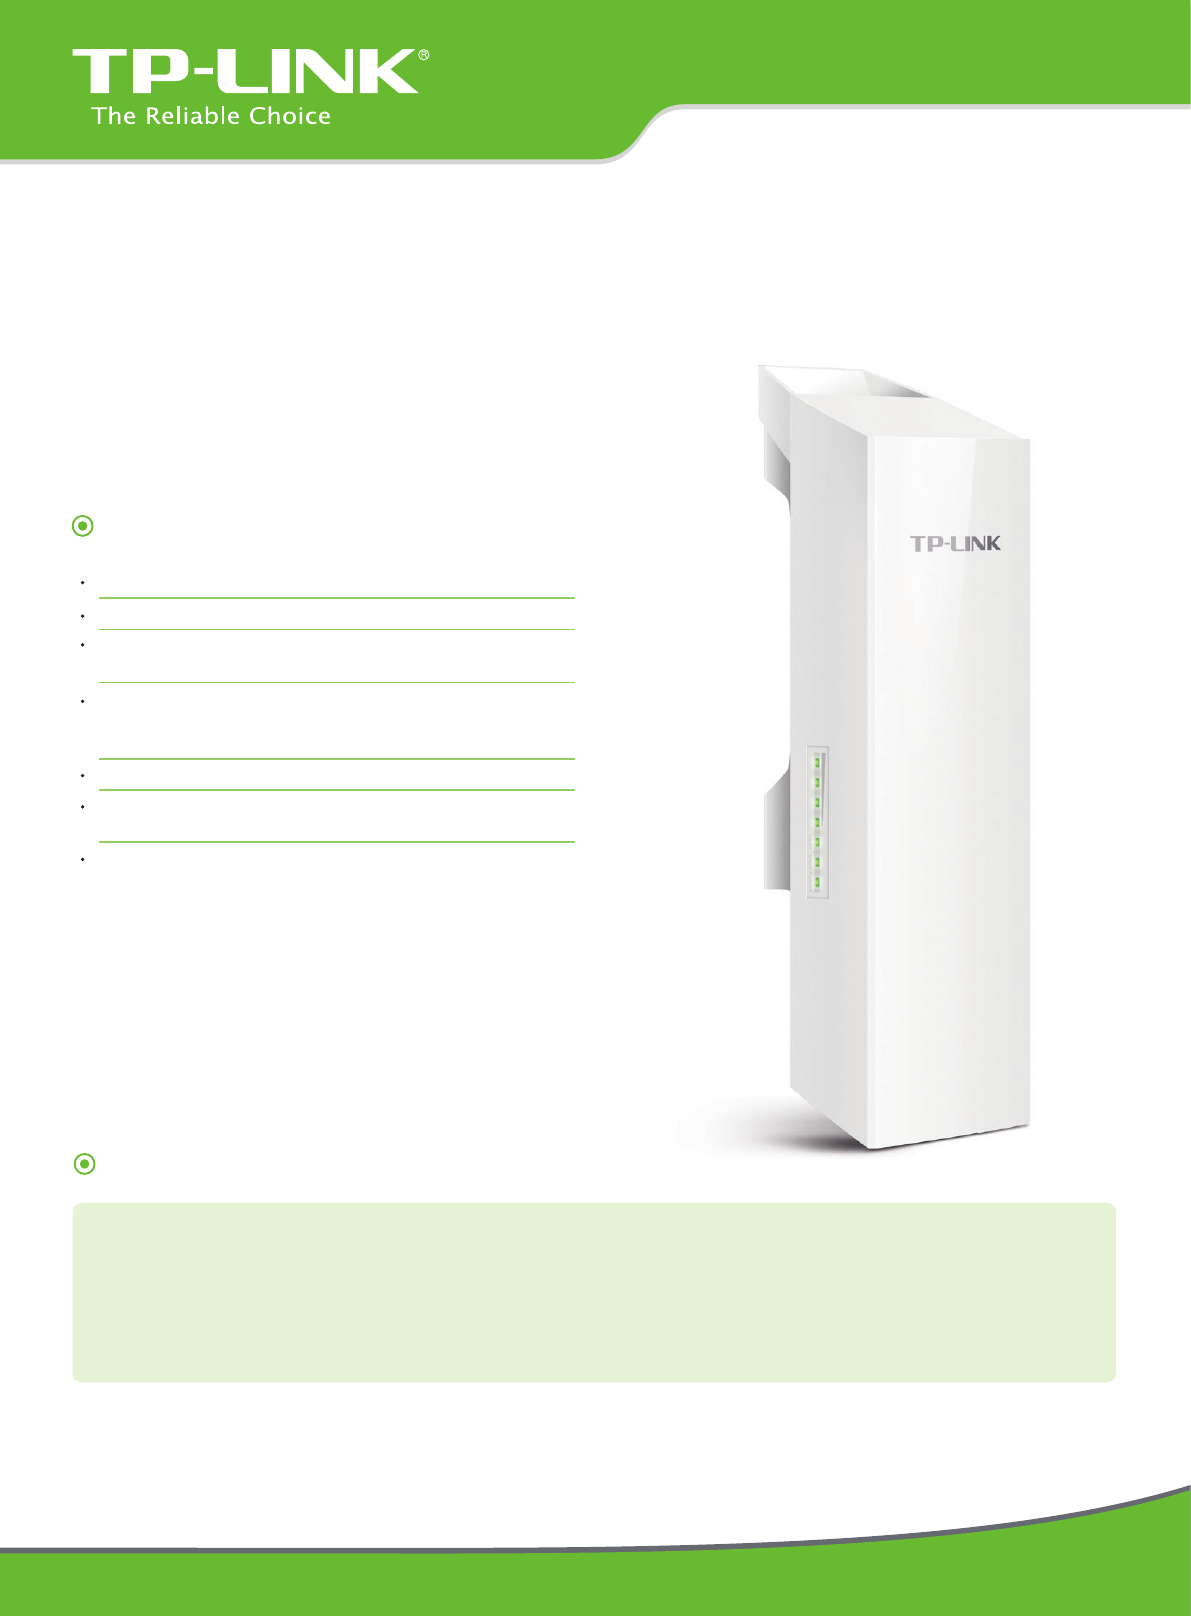 Tp Link Cpe210 Data Sheet V1 Datasheet Acces Point Wifi Tplink 24ghz 300mbps 9dbi Outdoor Cpe